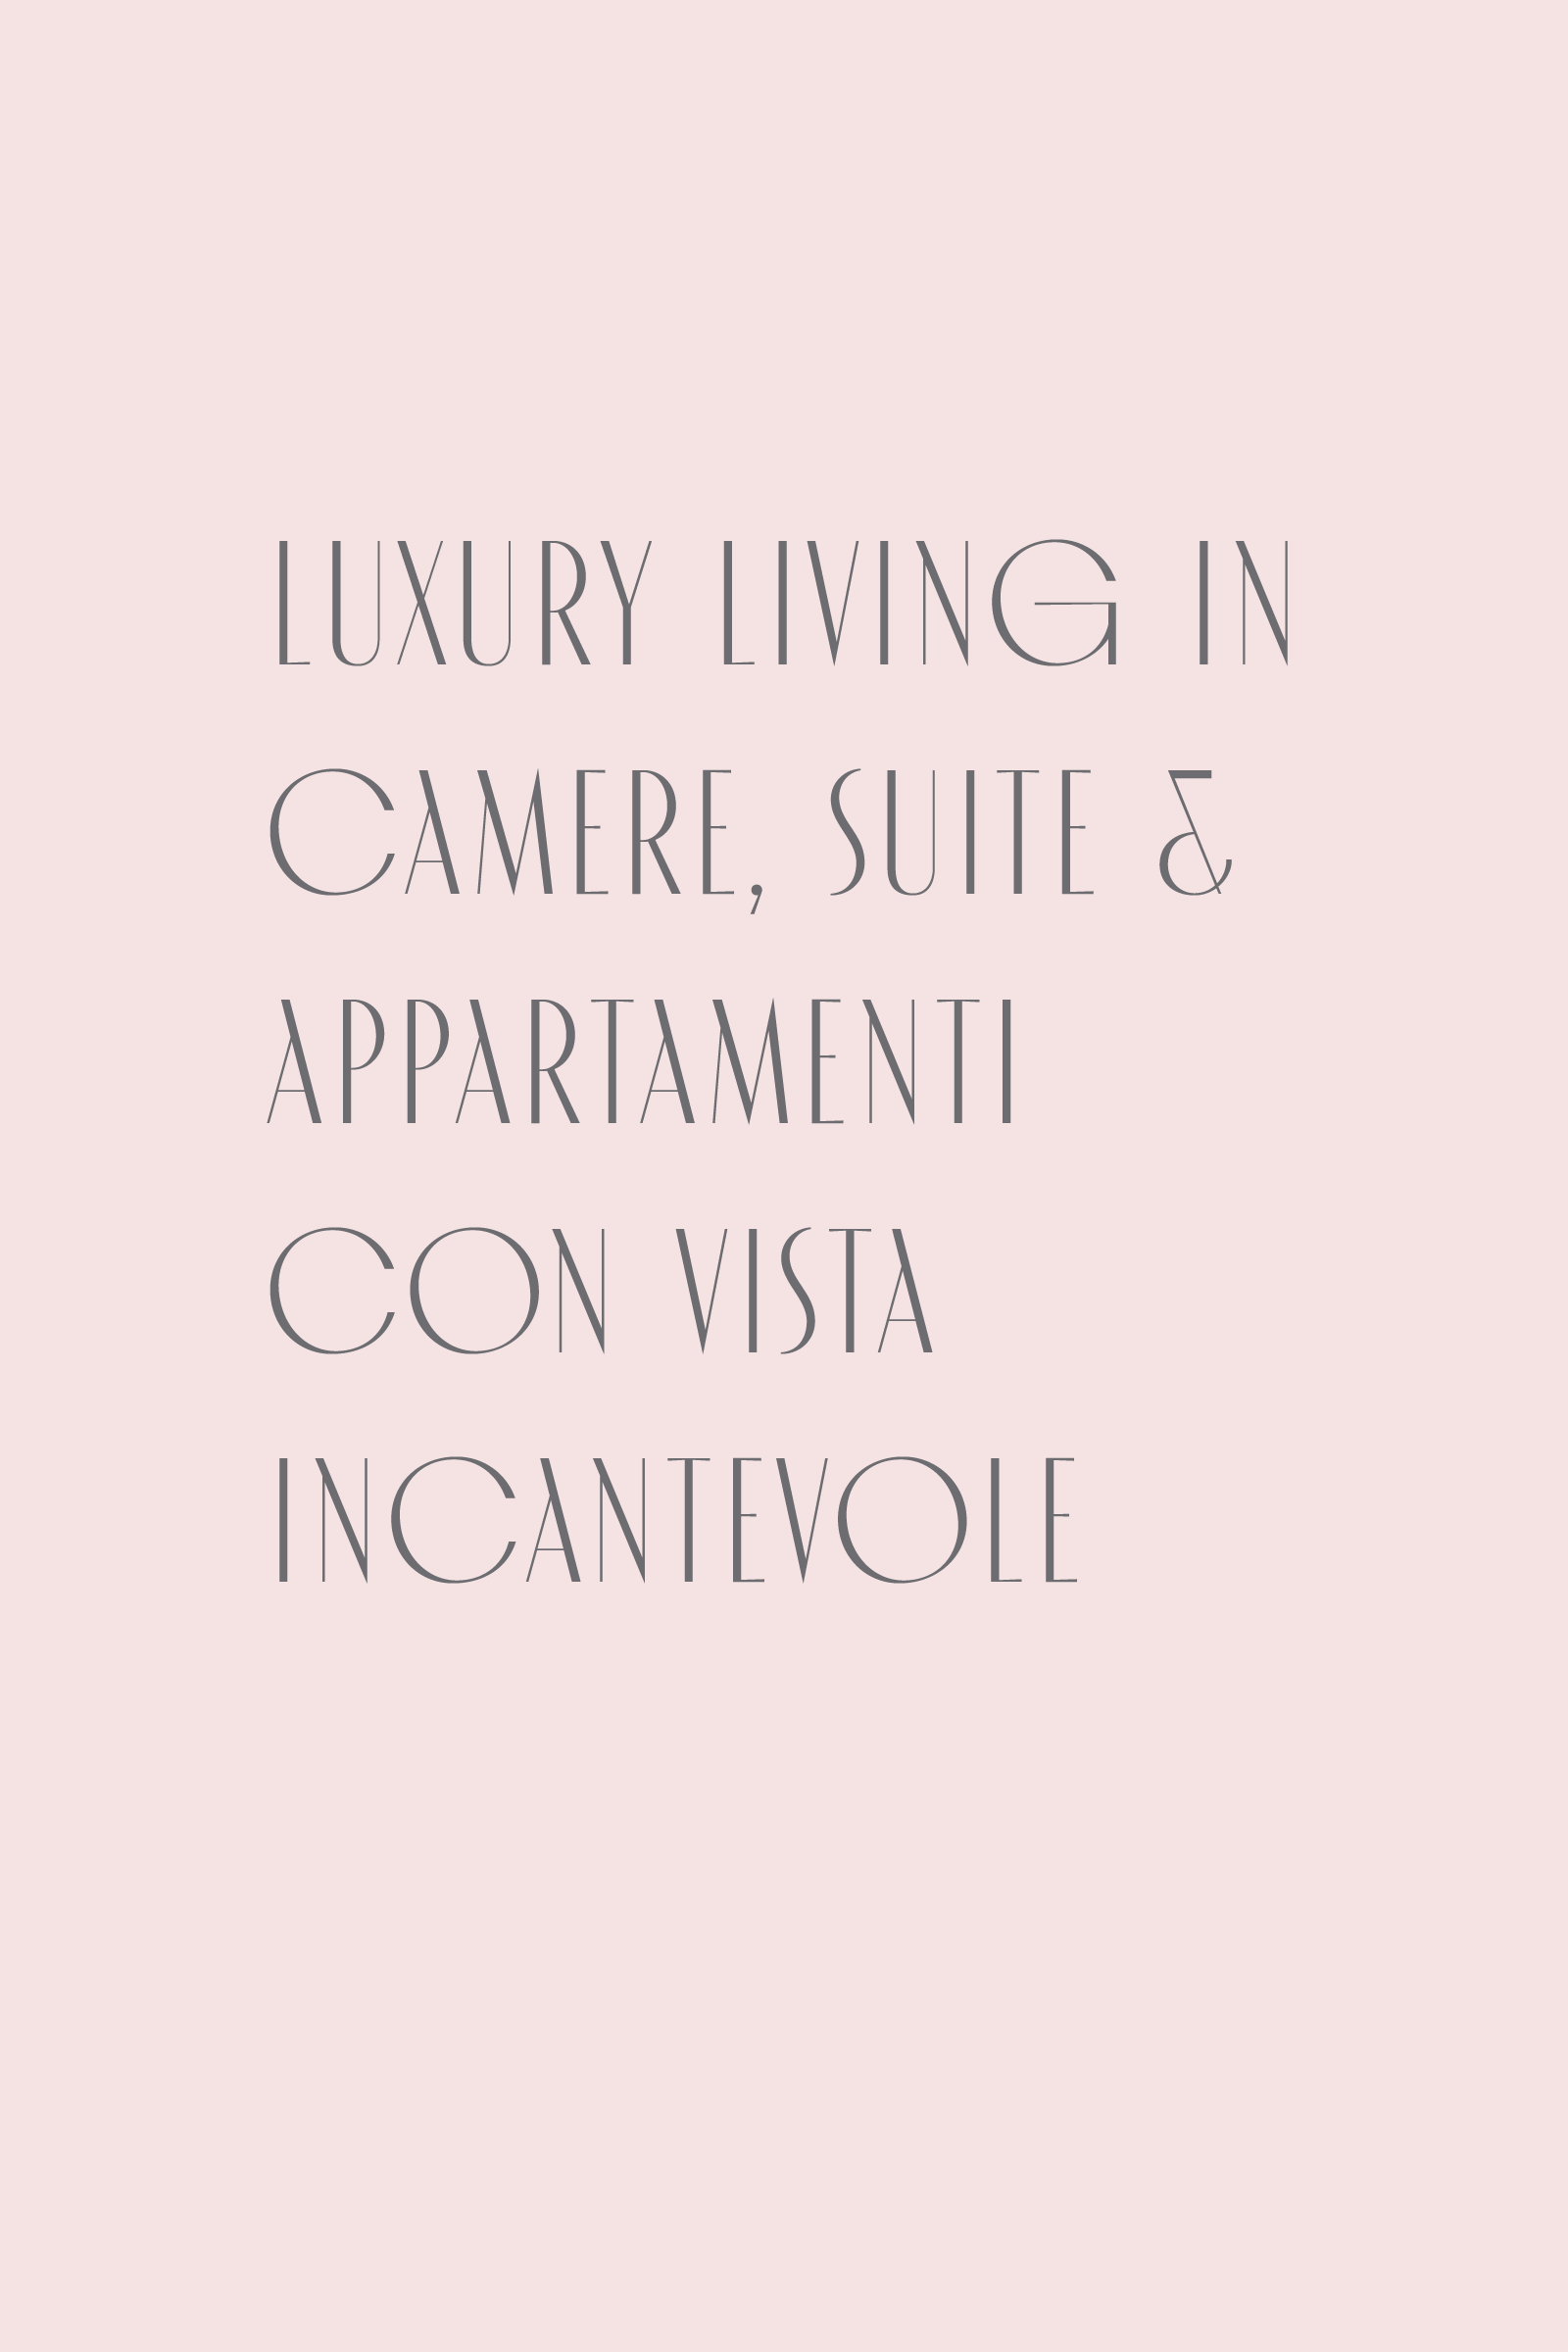 LUXURY LIVING NELLE NOSTRE NUOVE SUITE